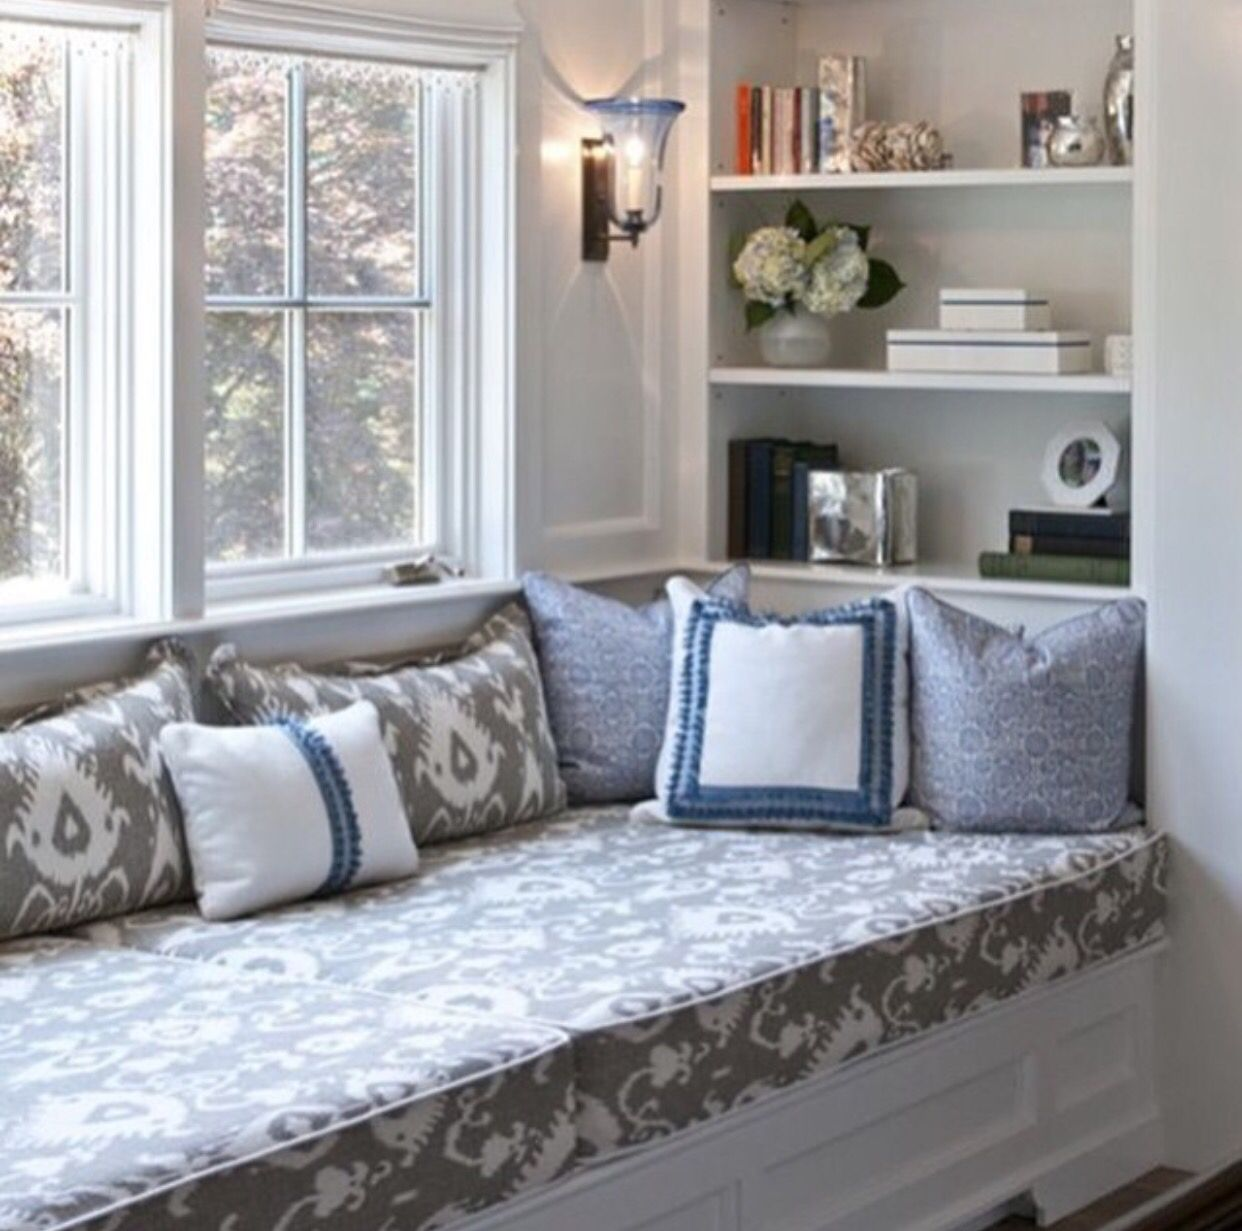 Bed on bay window  pin by yapusa on dream house  pinterest  home home decor and house